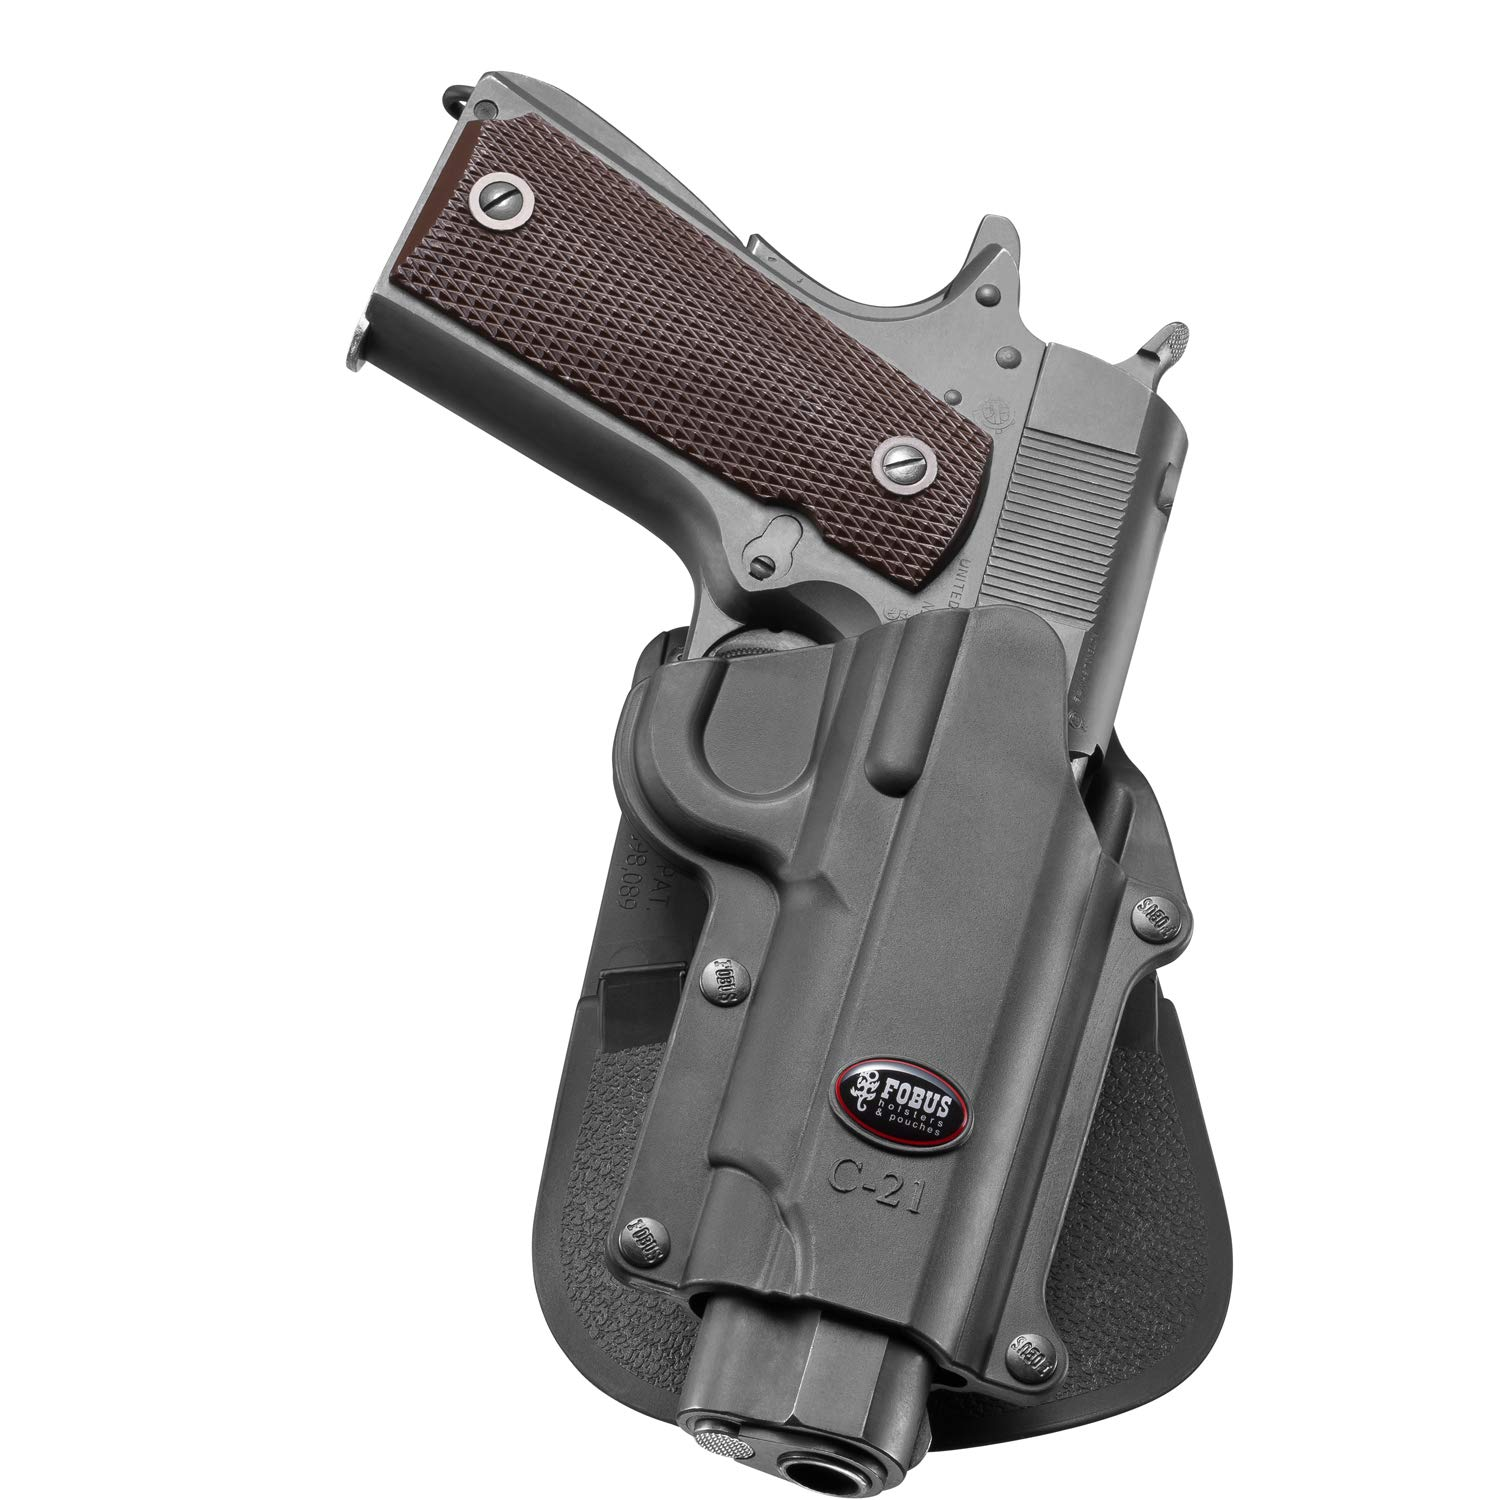 Fobus C-21 Paddle Halfter Fobus C-21 Paddle Colt 45/& 1911 Style,FN,High Power,Browning,Kimber